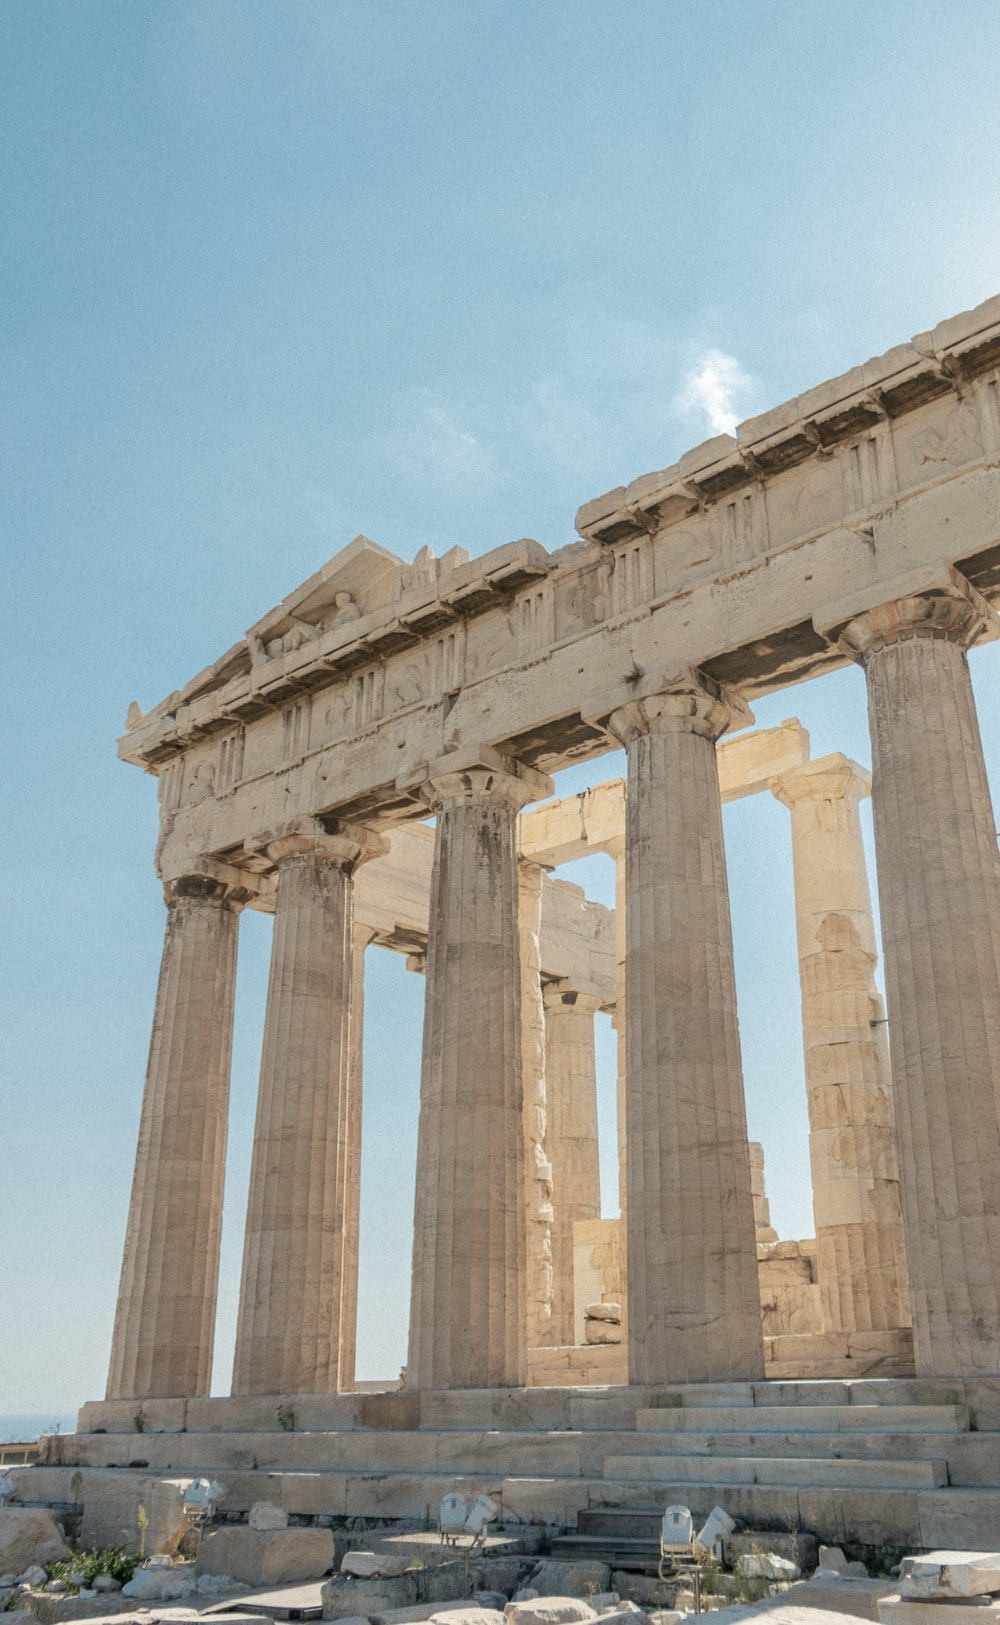 low-angle photography of The Parthenon during daytime